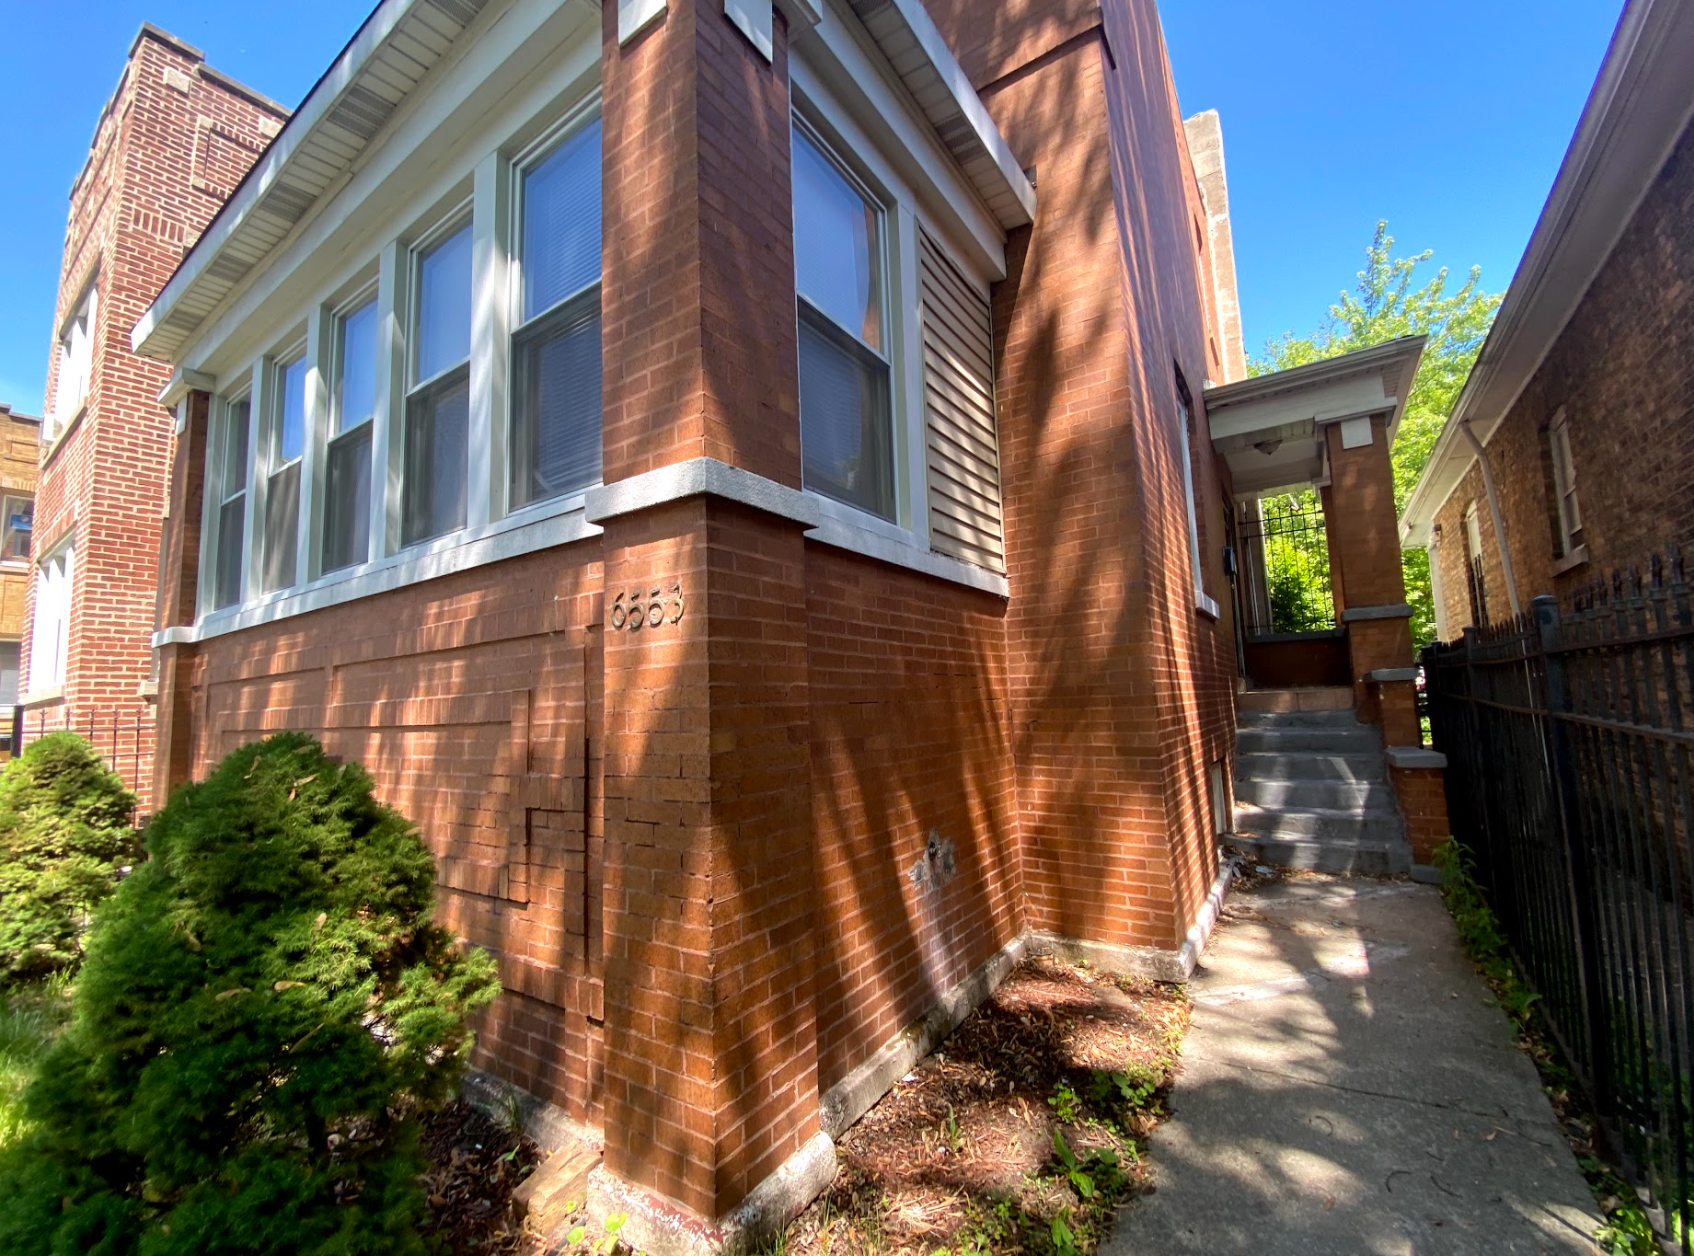 Off Market Single Family In Woodlawn | Property Plug